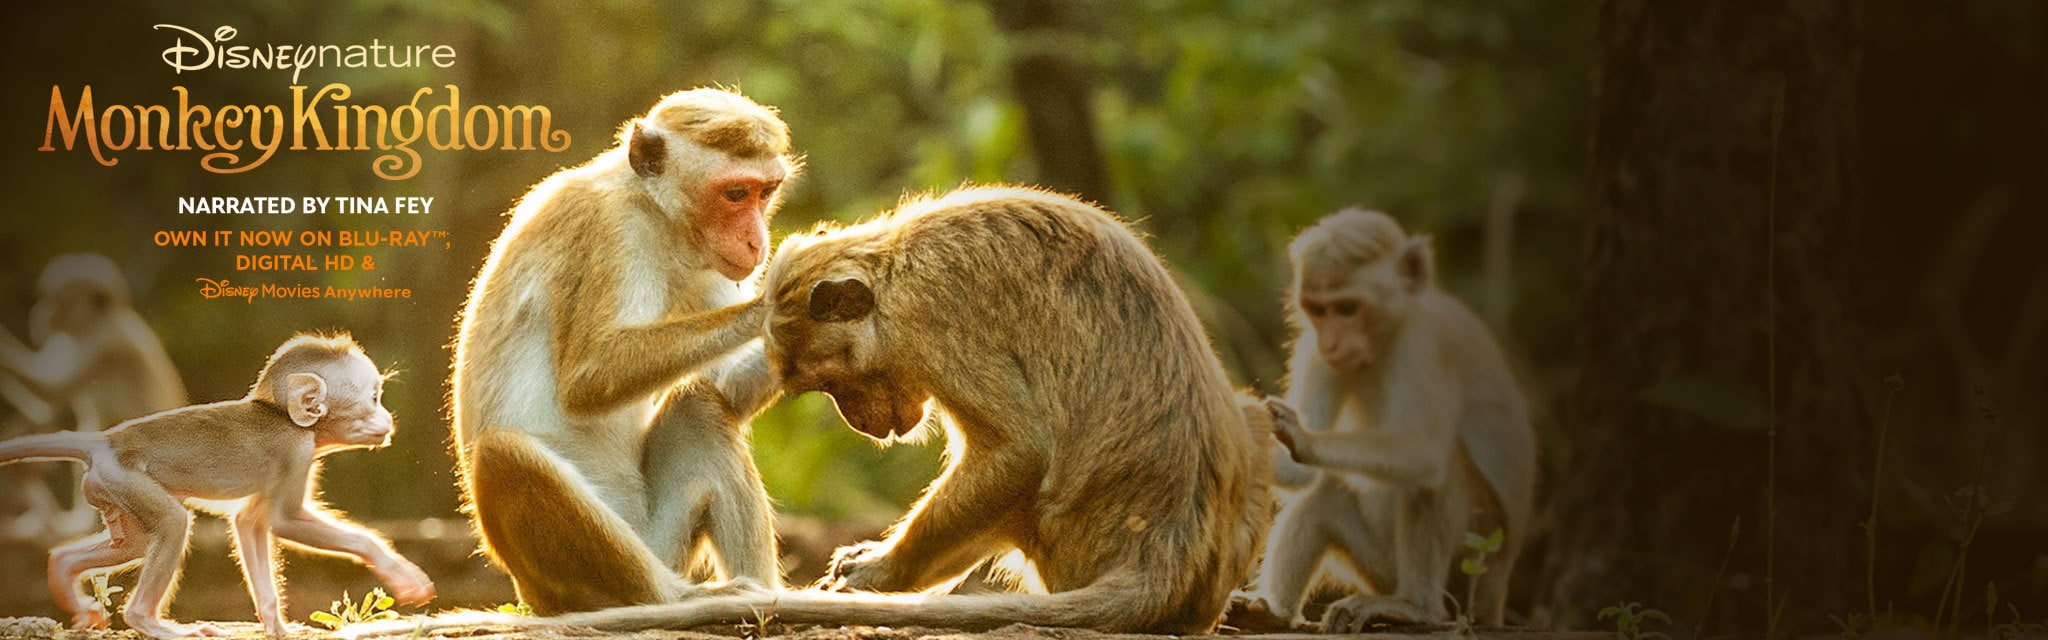 Monkey Kingdom- Disney Nature Homepage